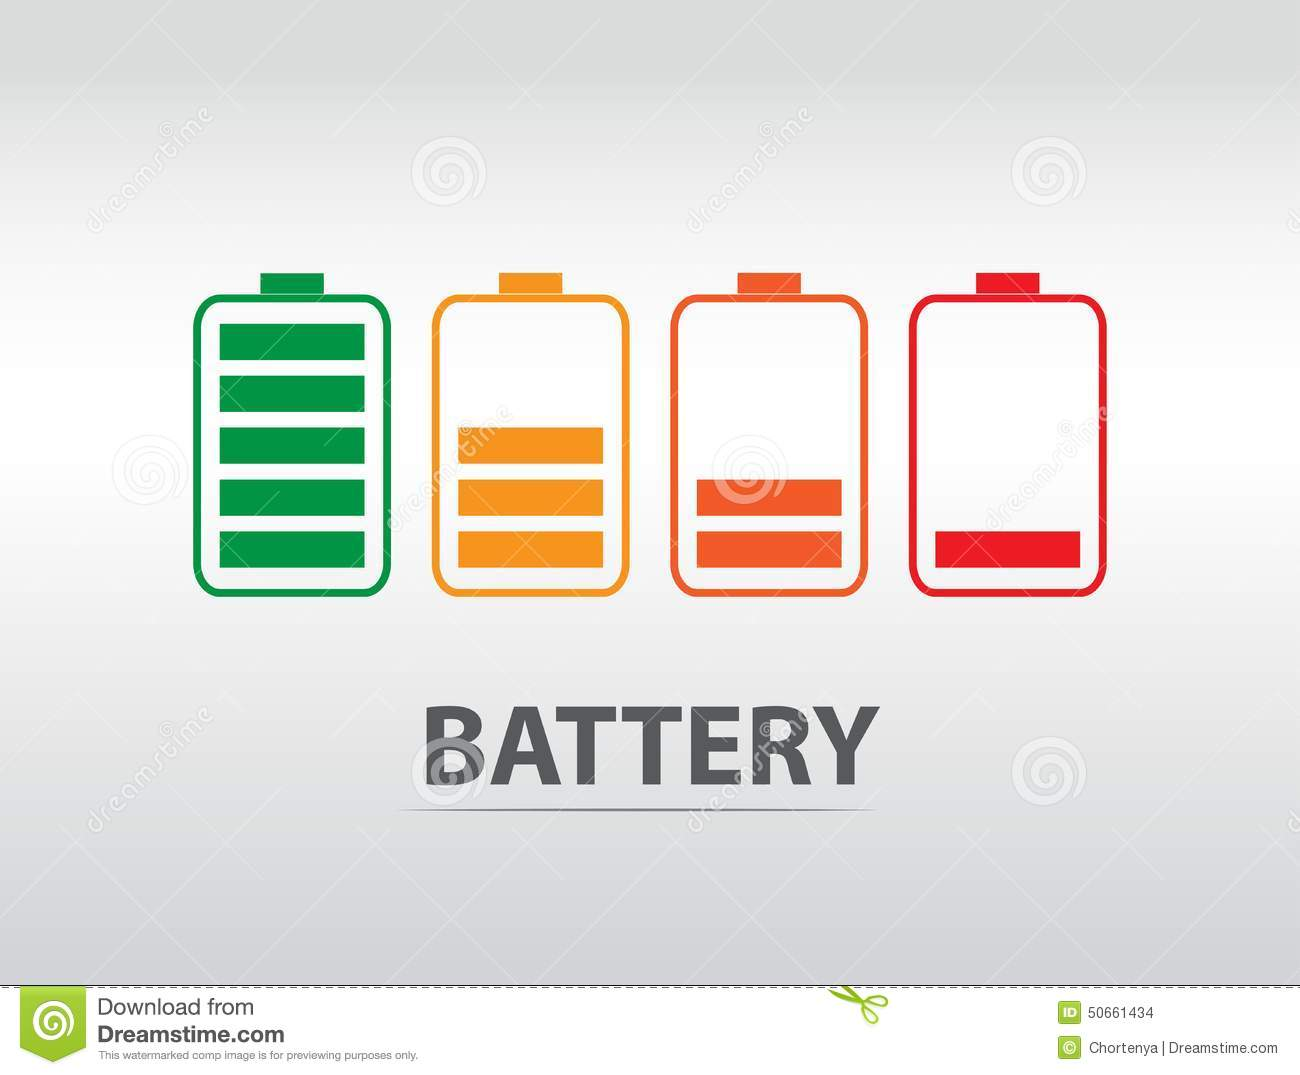 Windows 8 1 Set Battery Charge Level : Simple battery icon with colorful charge level stock